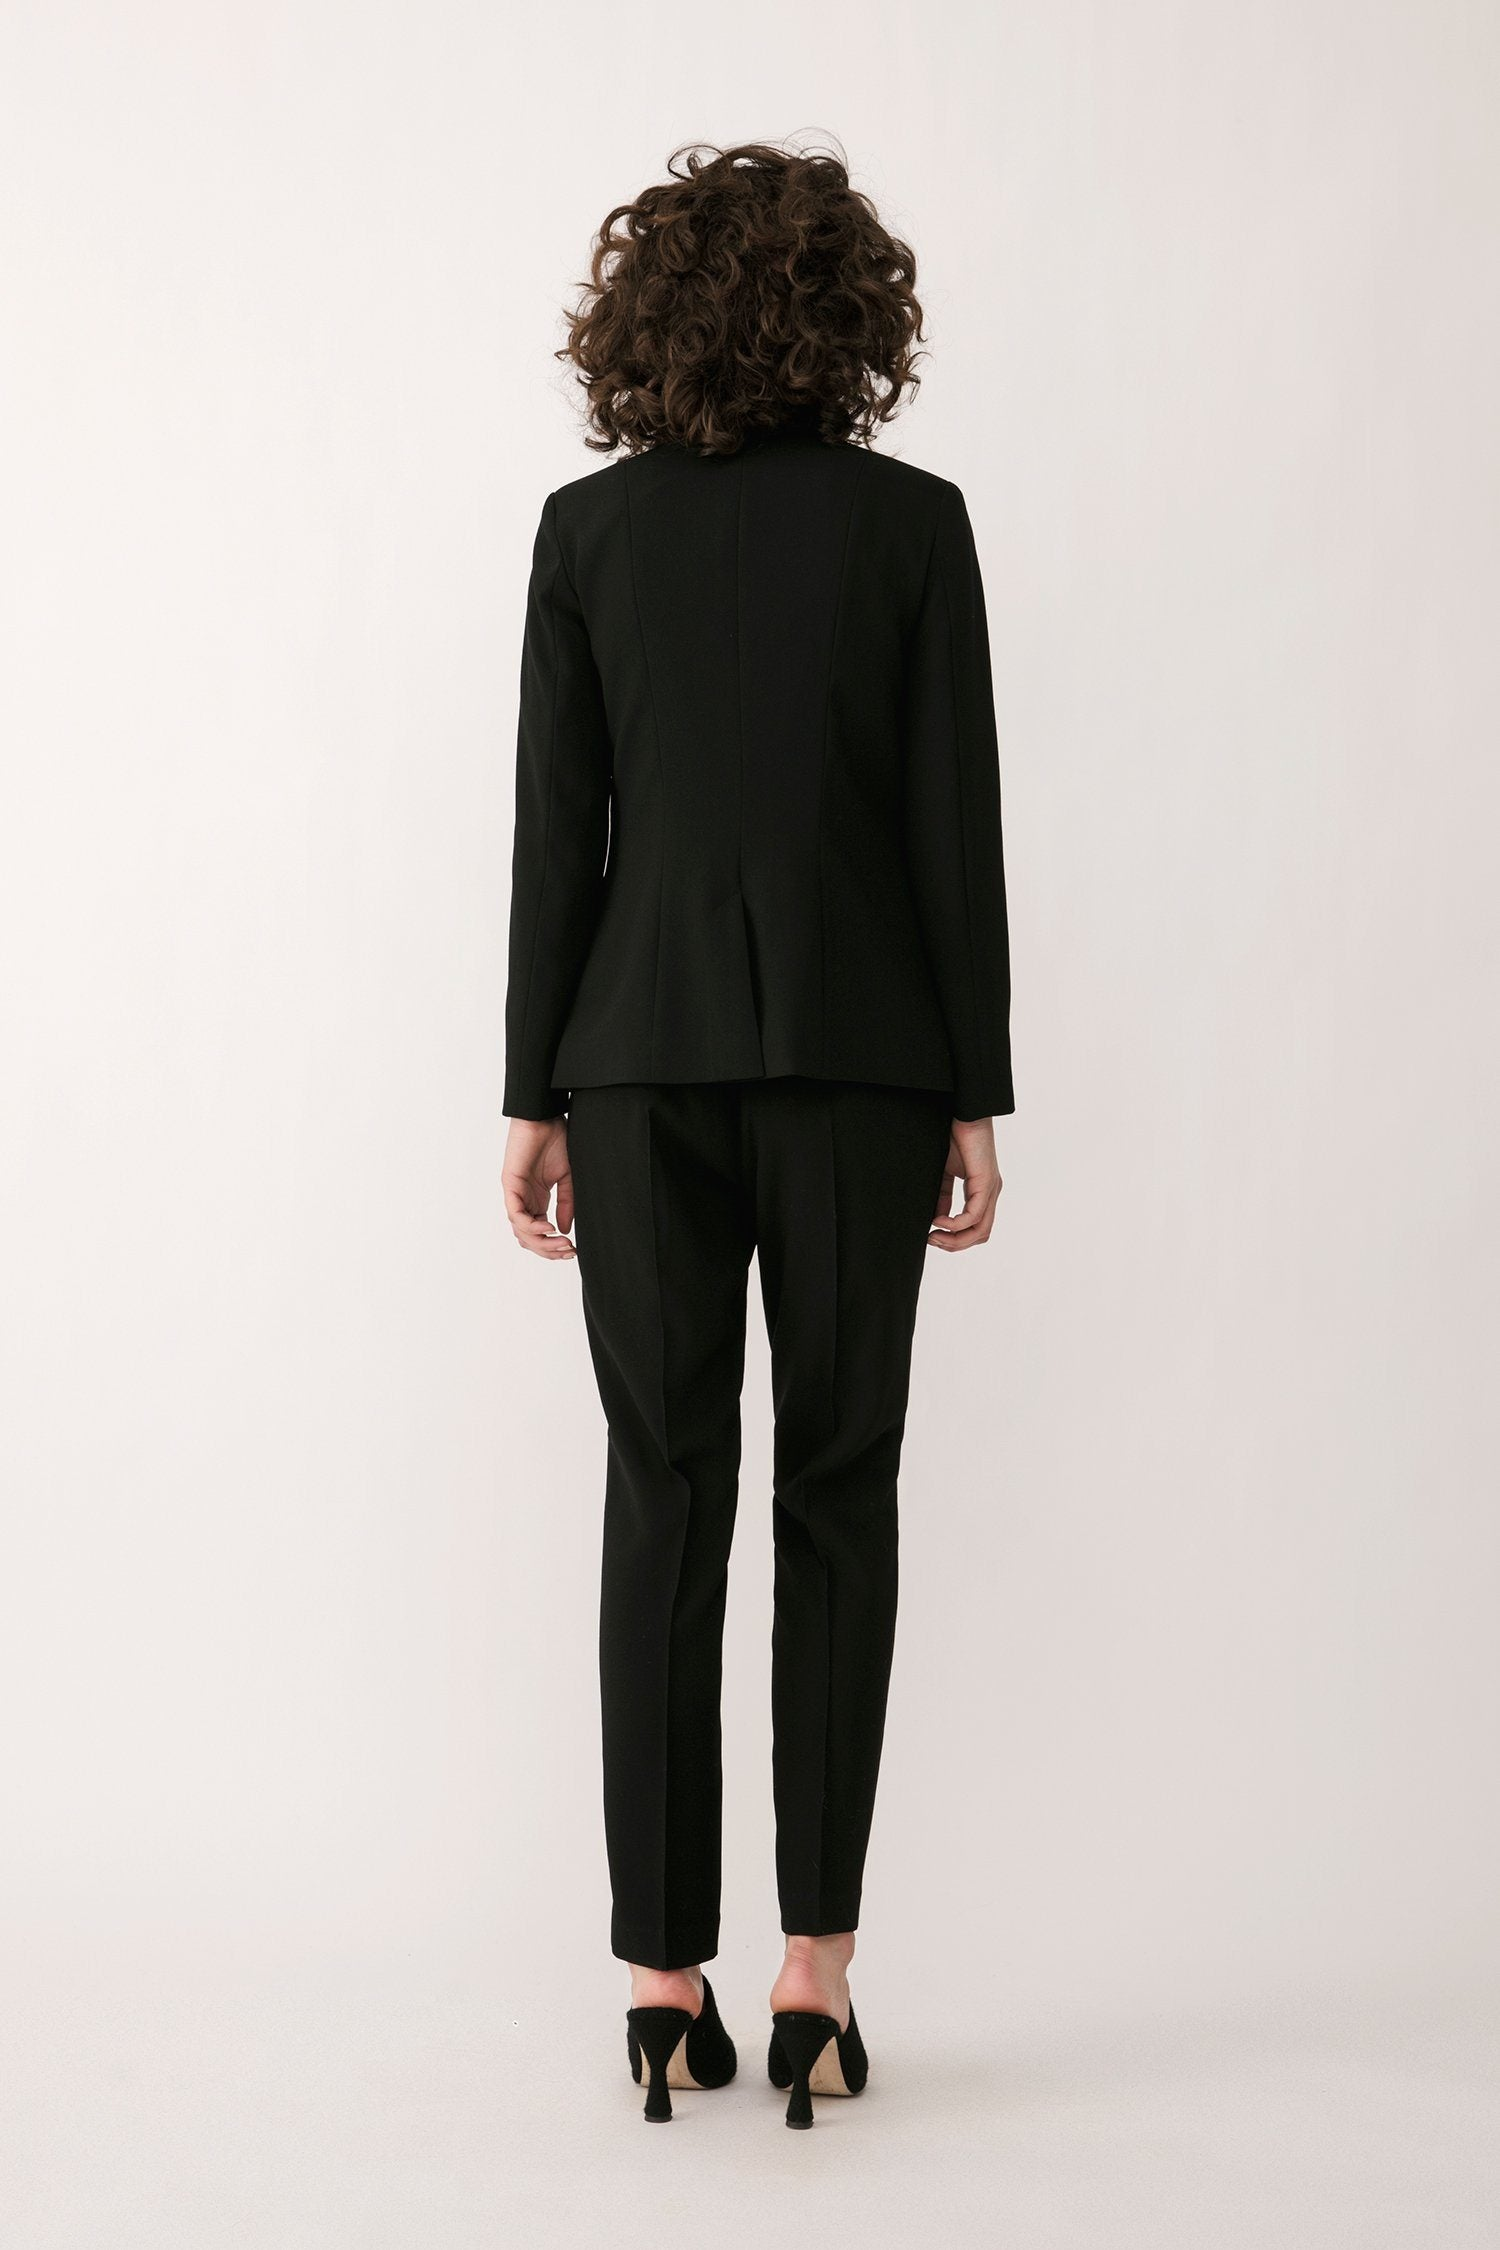 BAILEY BLAZER - BLACK Jacket Stylein